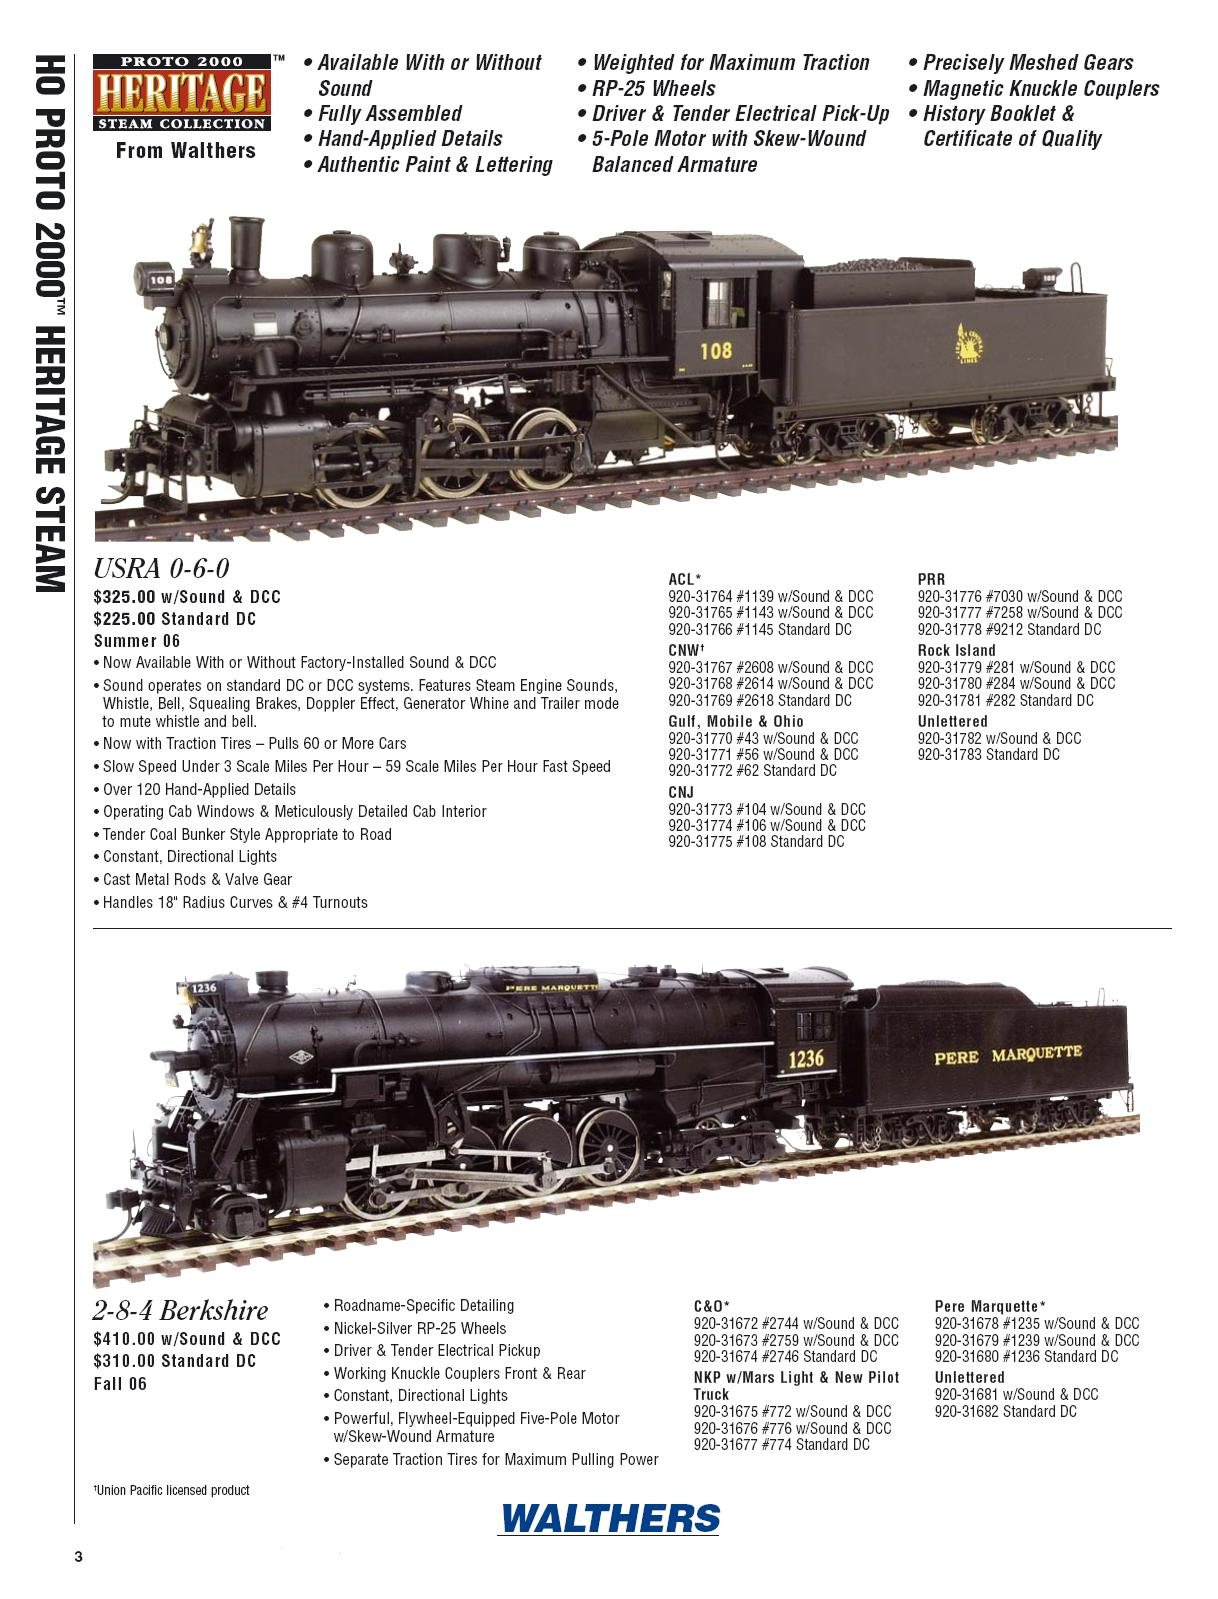 Walthers 2006 Cataloge steam page 2